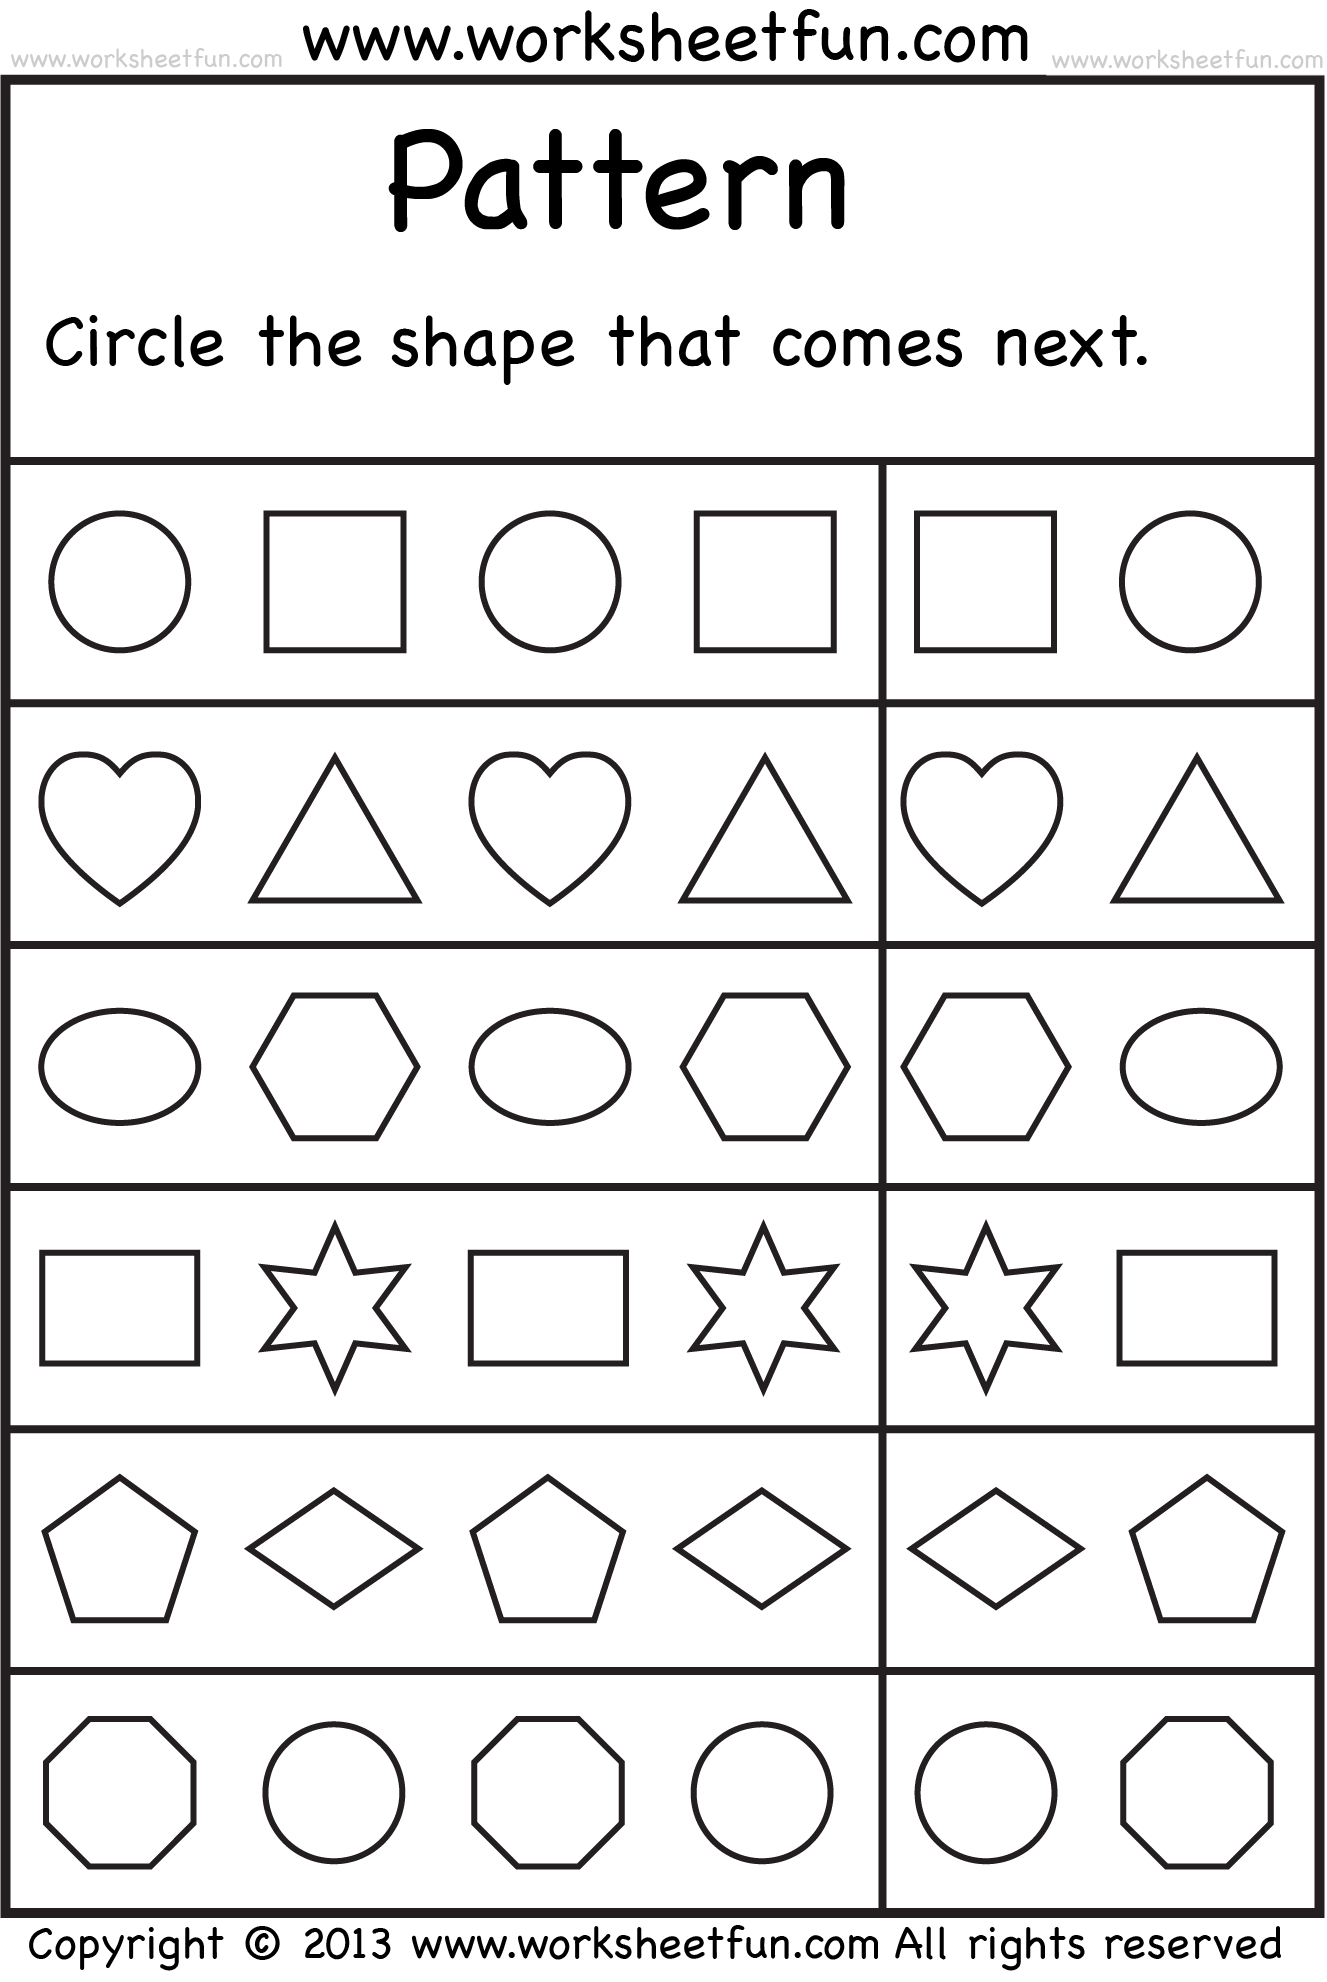 Proatmealus  Outstanding  Images About School Worksheets On Pinterest  Number Words  With Glamorous  Images About School Worksheets On Pinterest  Number Words Alphabet Worksheets And Free Printable Kindergarten Worksheets With Comely Treble Clef Worksheets Also Printable Monthly Budget Worksheet In Addition Esl Reading Comprehension Worksheets And Combining Functions Worksheet As Well As Social Security Benefits Worksheet  Additionally Order Of Operations Worksheet Th Grade From Pinterestcom With Proatmealus  Glamorous  Images About School Worksheets On Pinterest  Number Words  With Comely  Images About School Worksheets On Pinterest  Number Words Alphabet Worksheets And Free Printable Kindergarten Worksheets And Outstanding Treble Clef Worksheets Also Printable Monthly Budget Worksheet In Addition Esl Reading Comprehension Worksheets From Pinterestcom